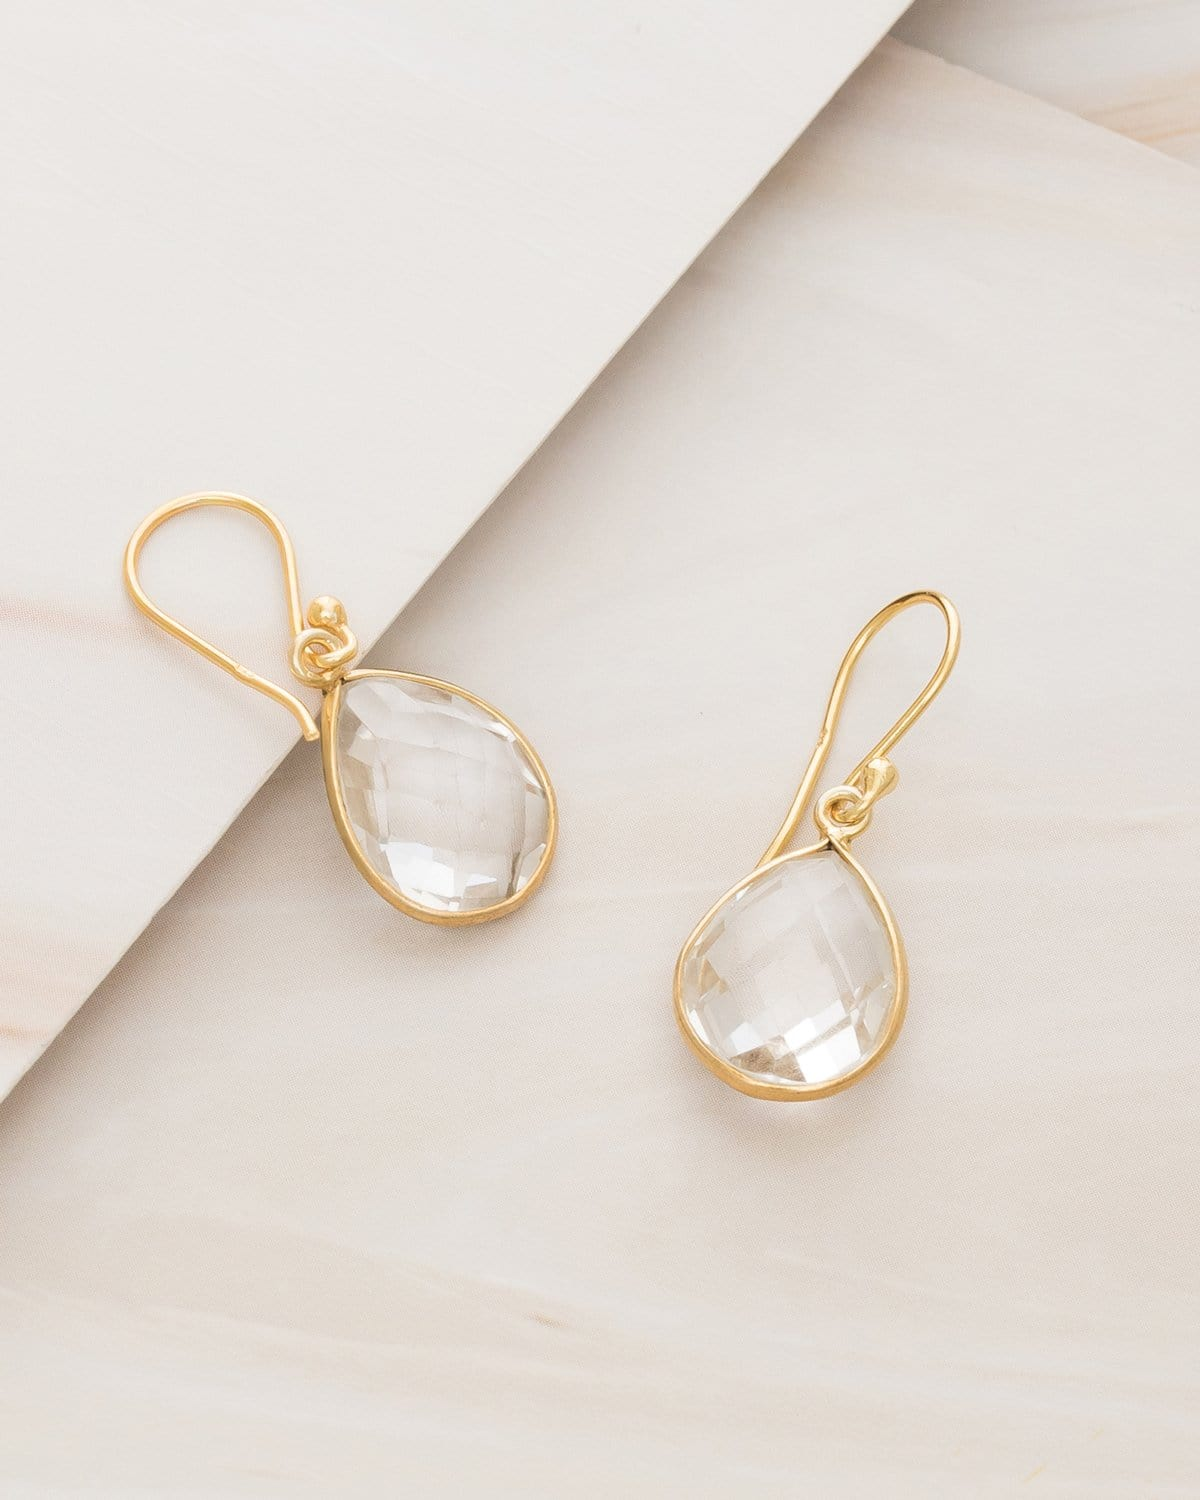 Emblem Jewelry Earrings Clear Quartz Small Candy Quartz Gemstone Drop Earrings